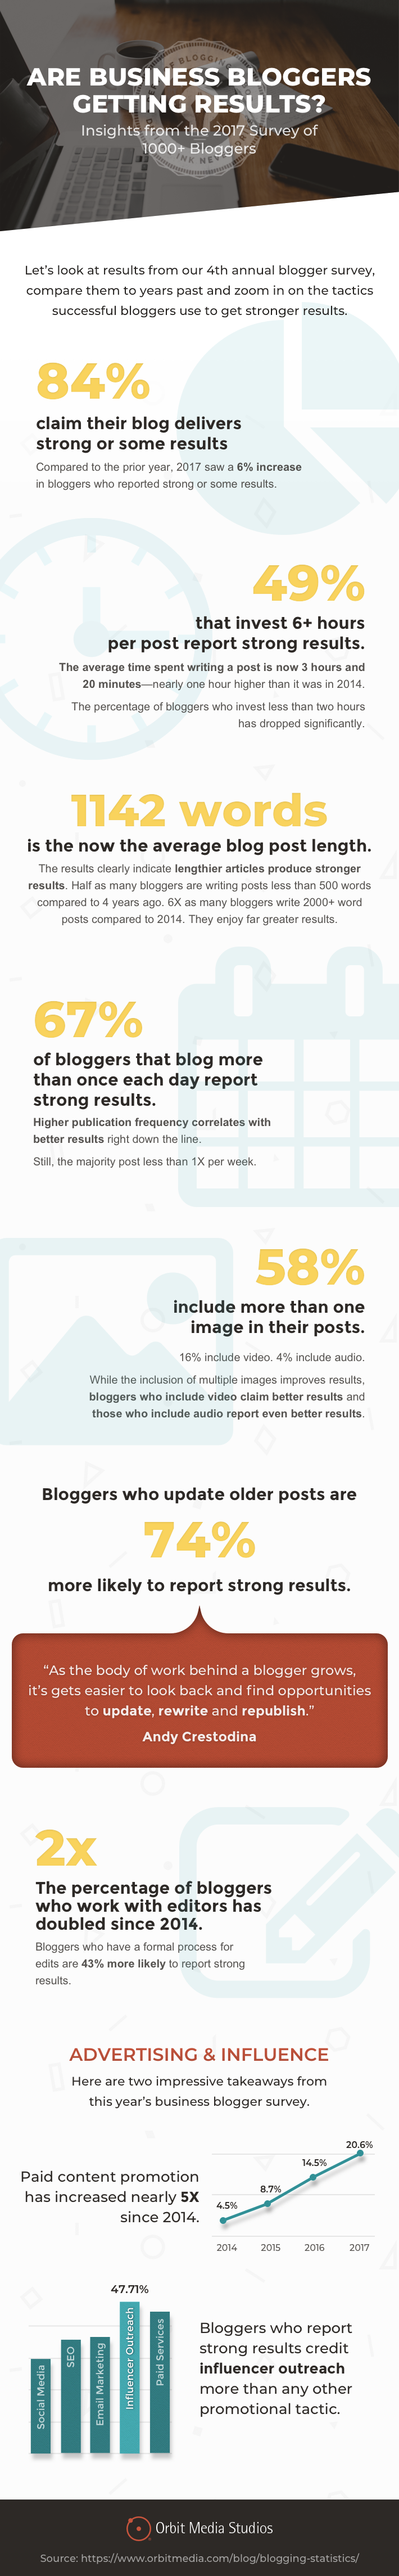 blogger-survey 2017-infographic-final.png  Does Business Blogging Still Get Results in 2017? New Data from 1,000 Bloggers [Infographic] blogger survey 202017 infographic final